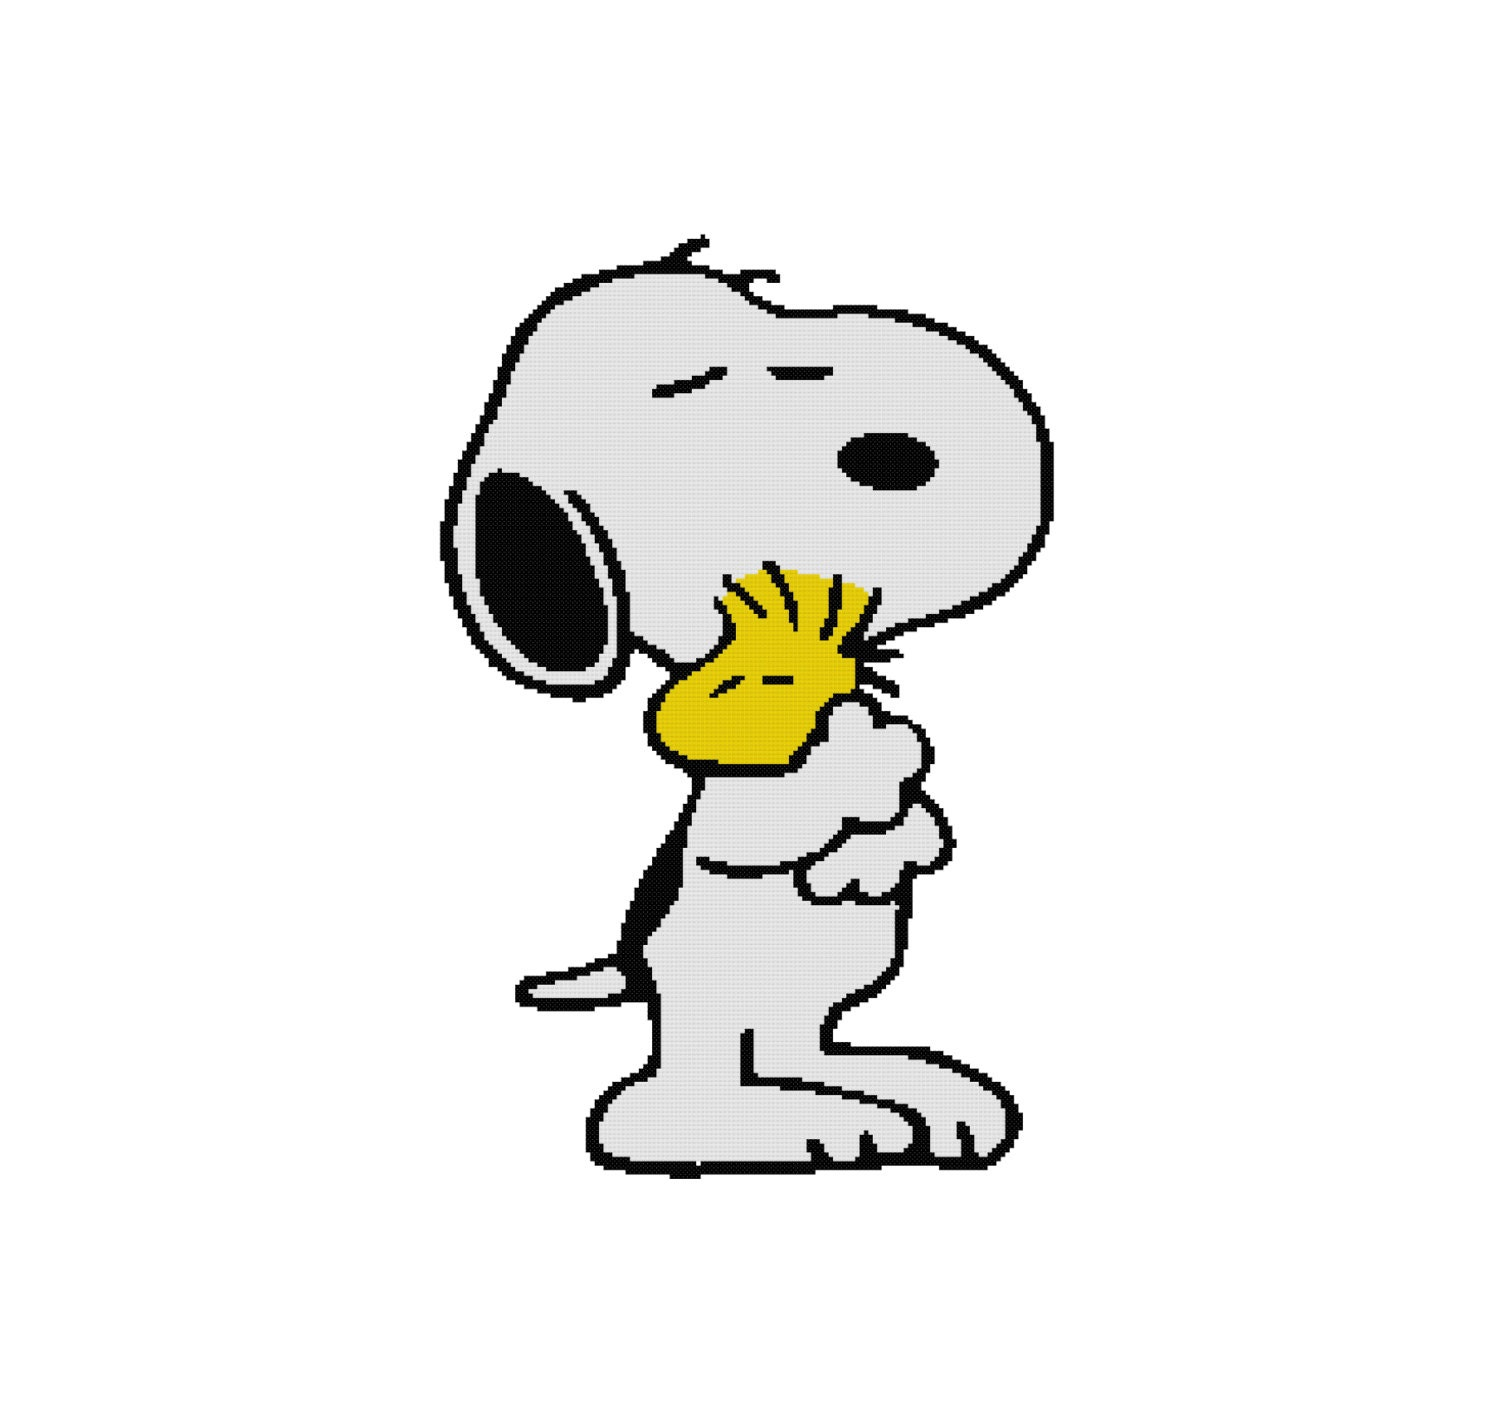 peanuts characters Find and save ideas about peanuts characters on pinterest | see more ideas about snoopy characters, the peanuts and peanuts gang.